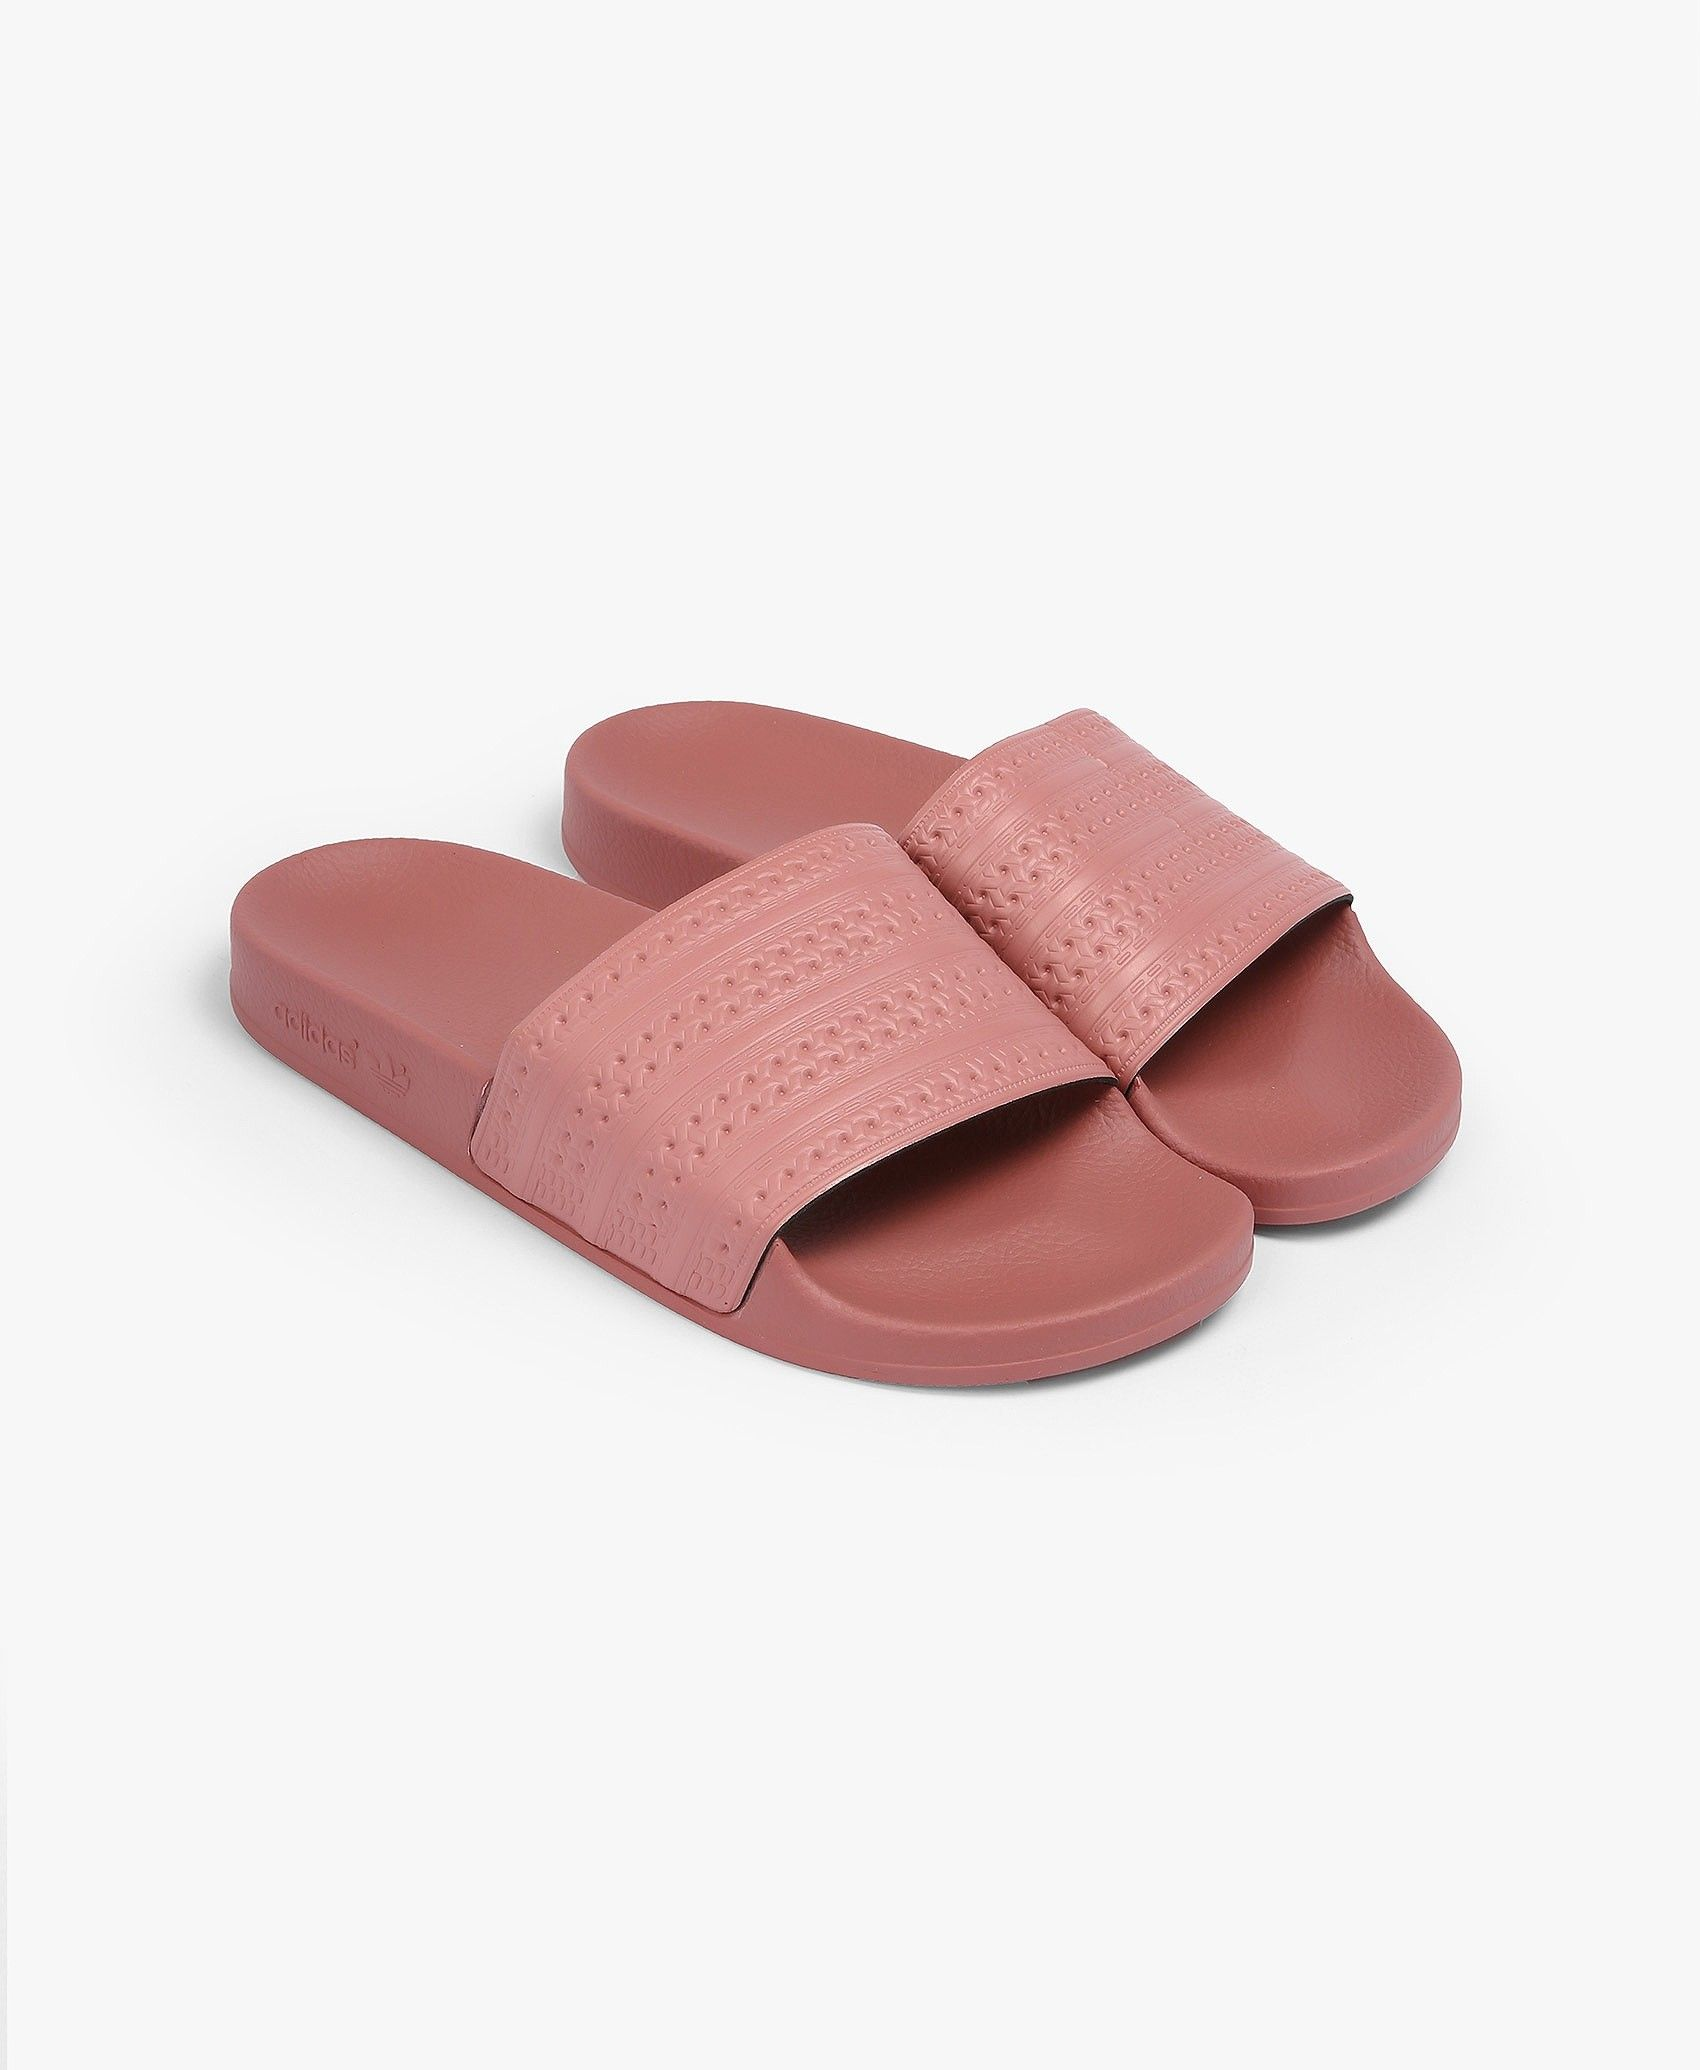 Dusty Pink Adilette Slides - Sports